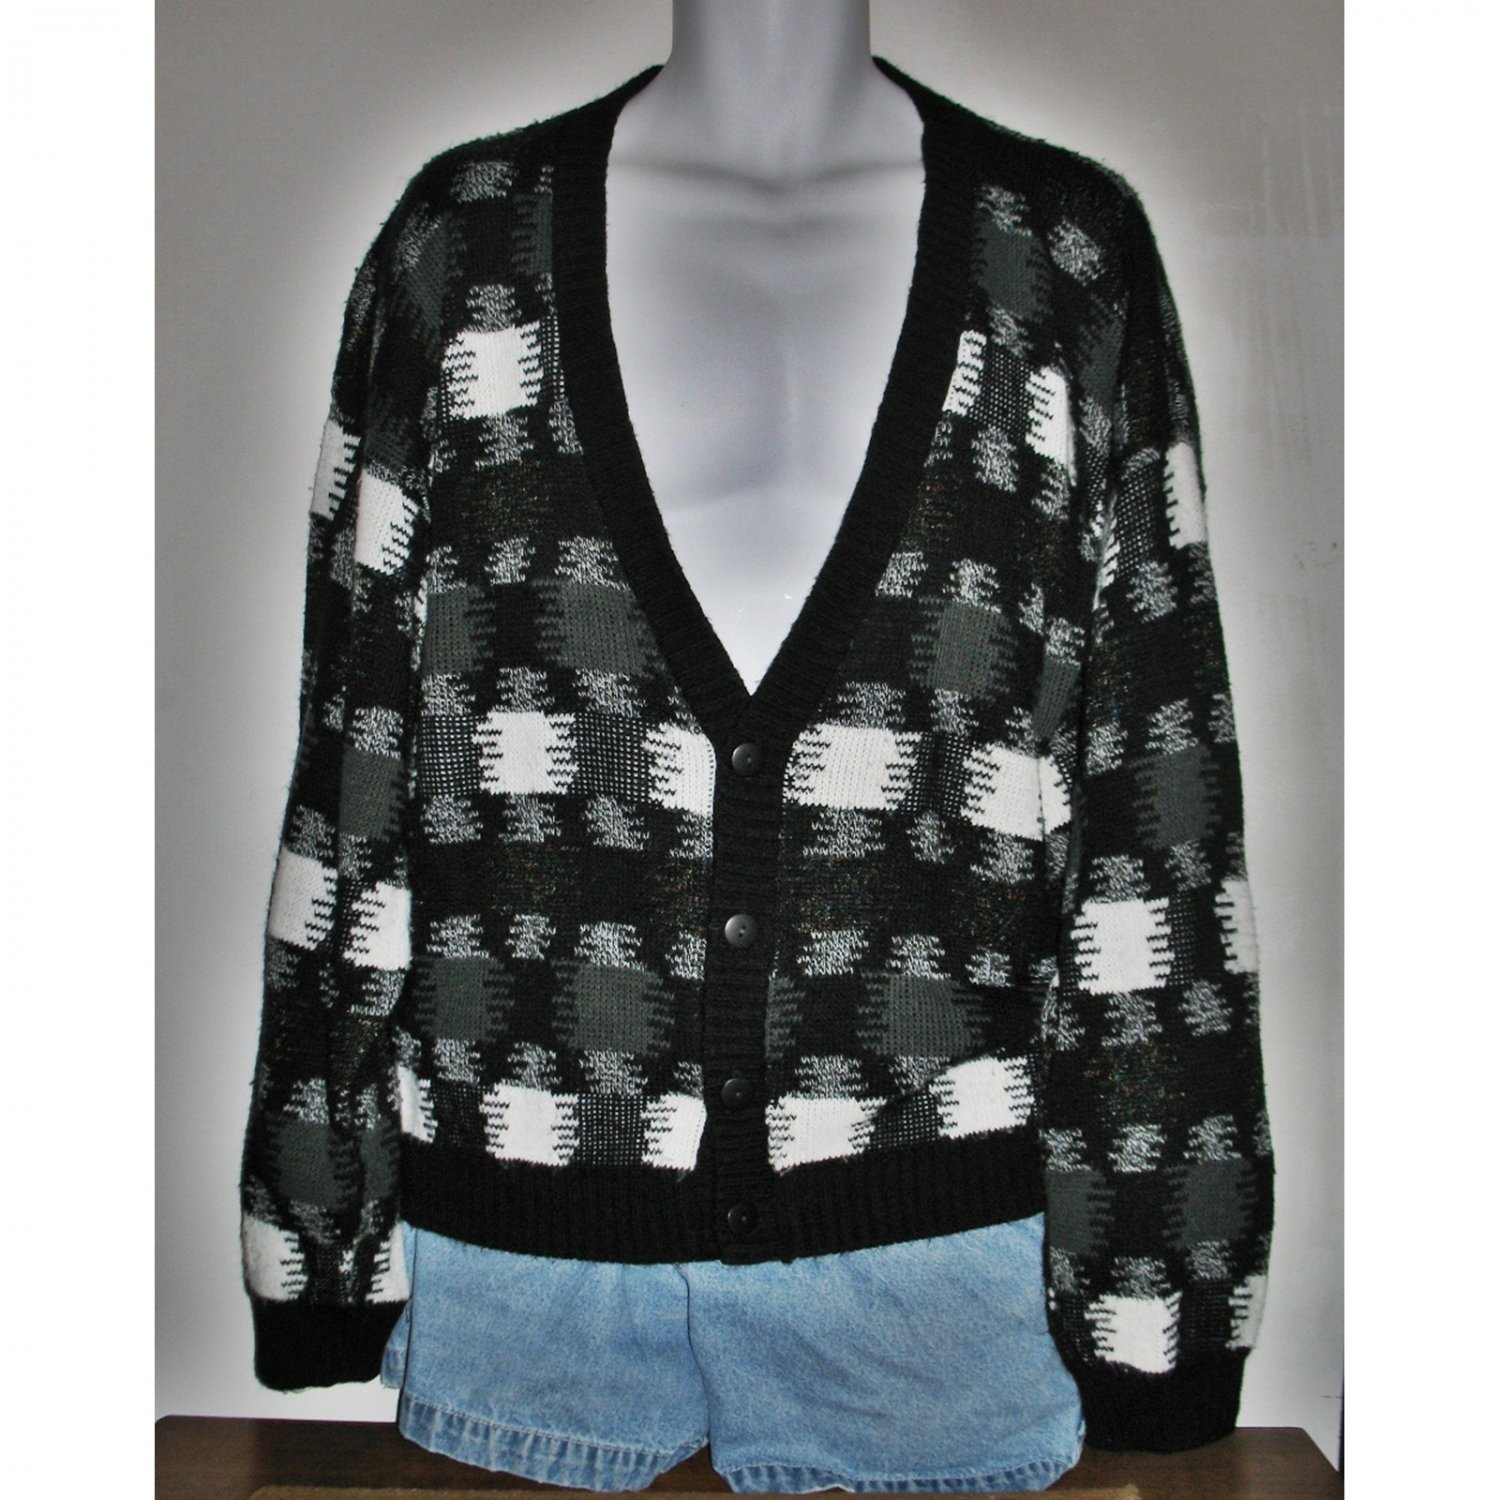 Vintage 70s/80s Cardigan Unisex Black and White Geometric Pattern Size Large